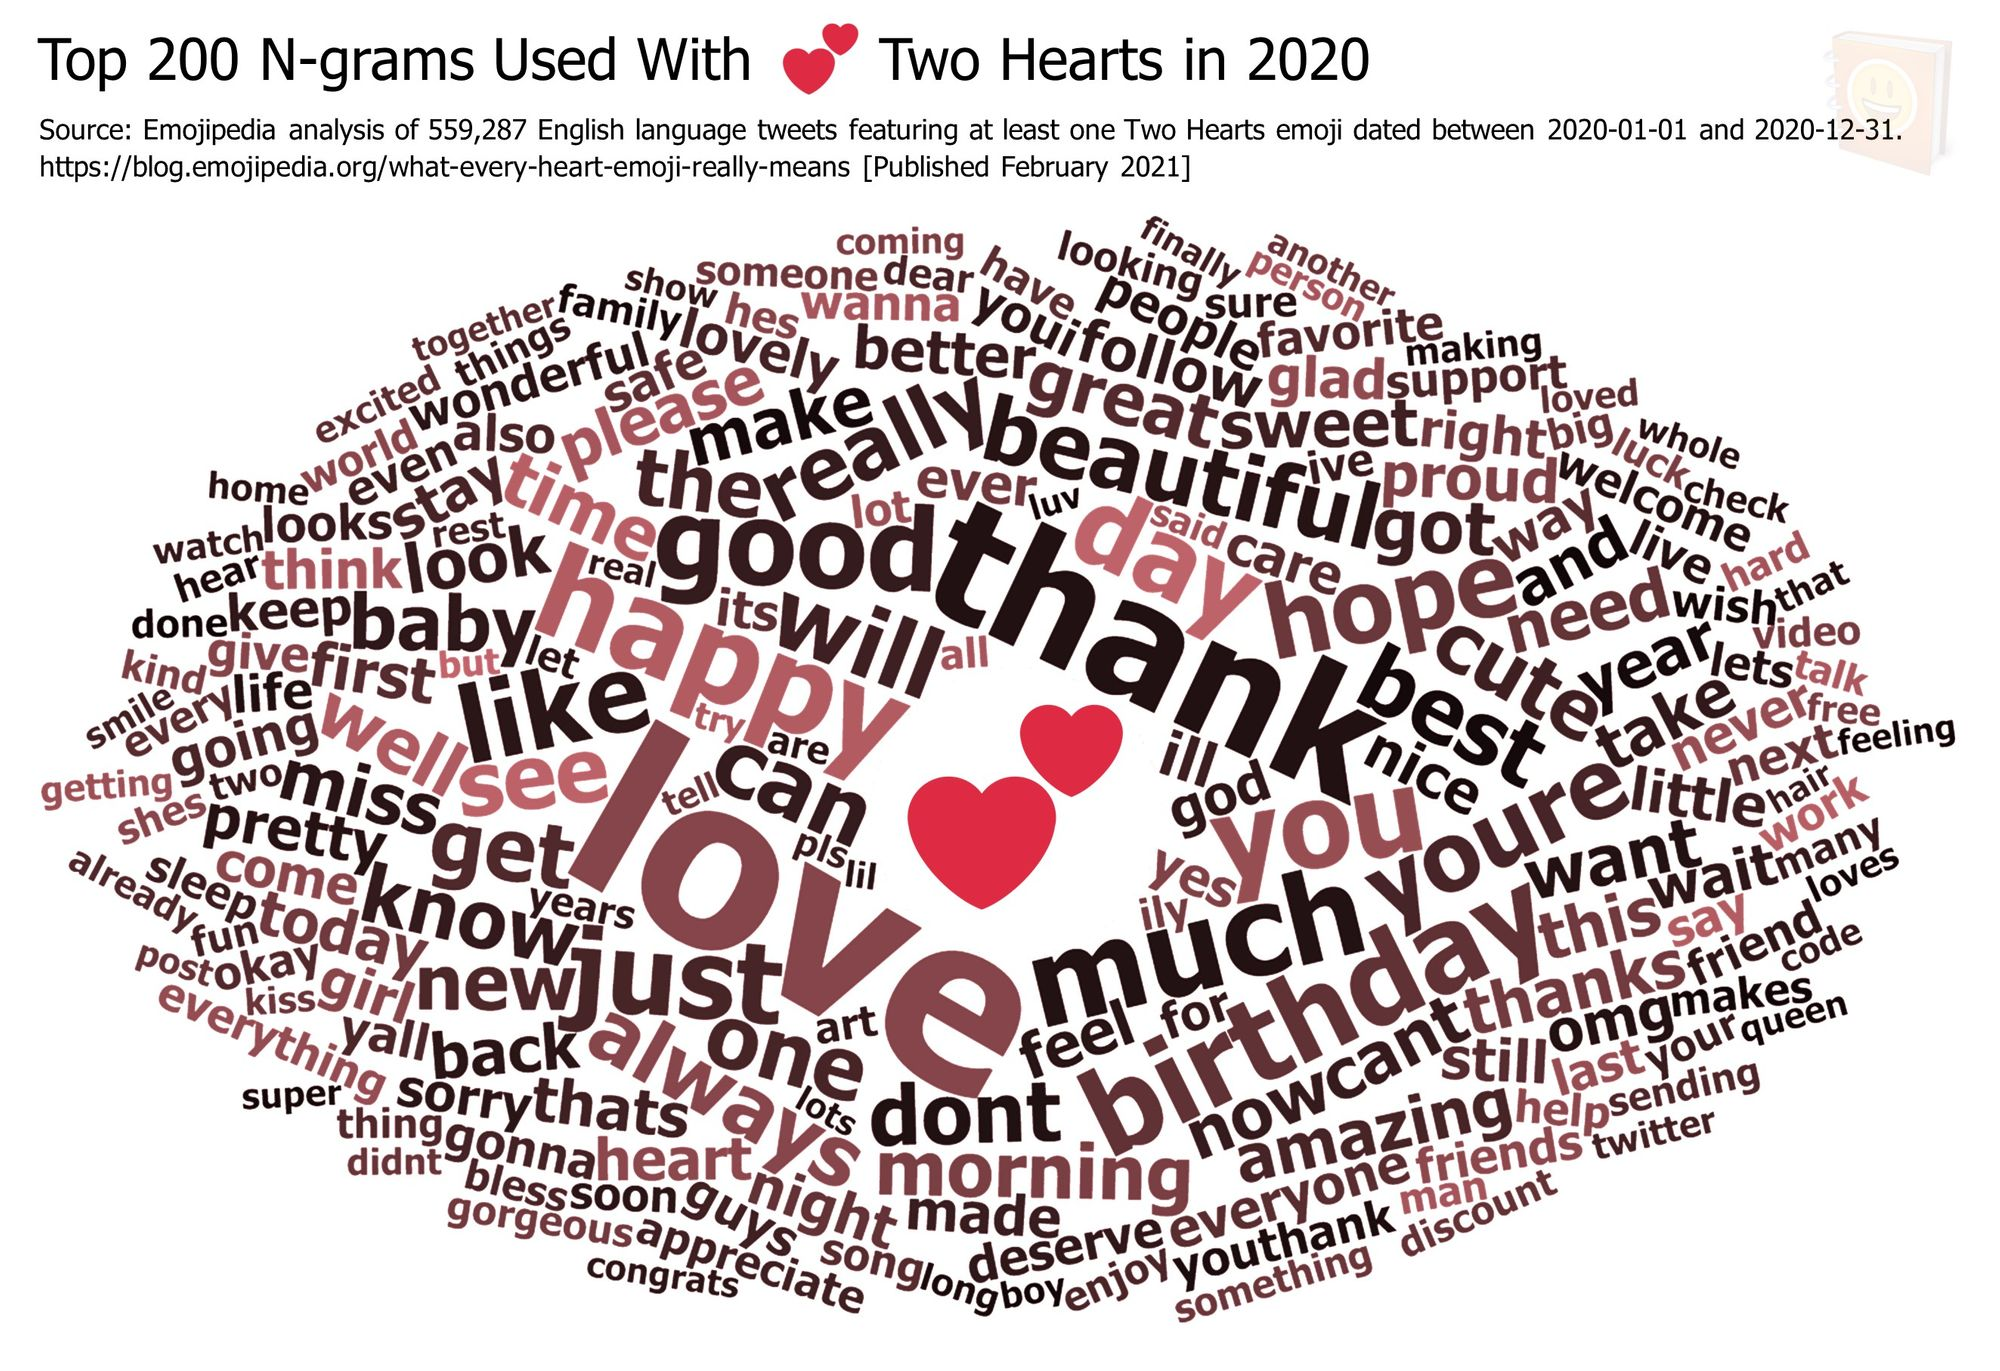 Emojipedia-Blog---What-Every-Heart-Emoji-Really-Means---Top-200-N-grams-Used-With-------Two-Hearts-in-2020